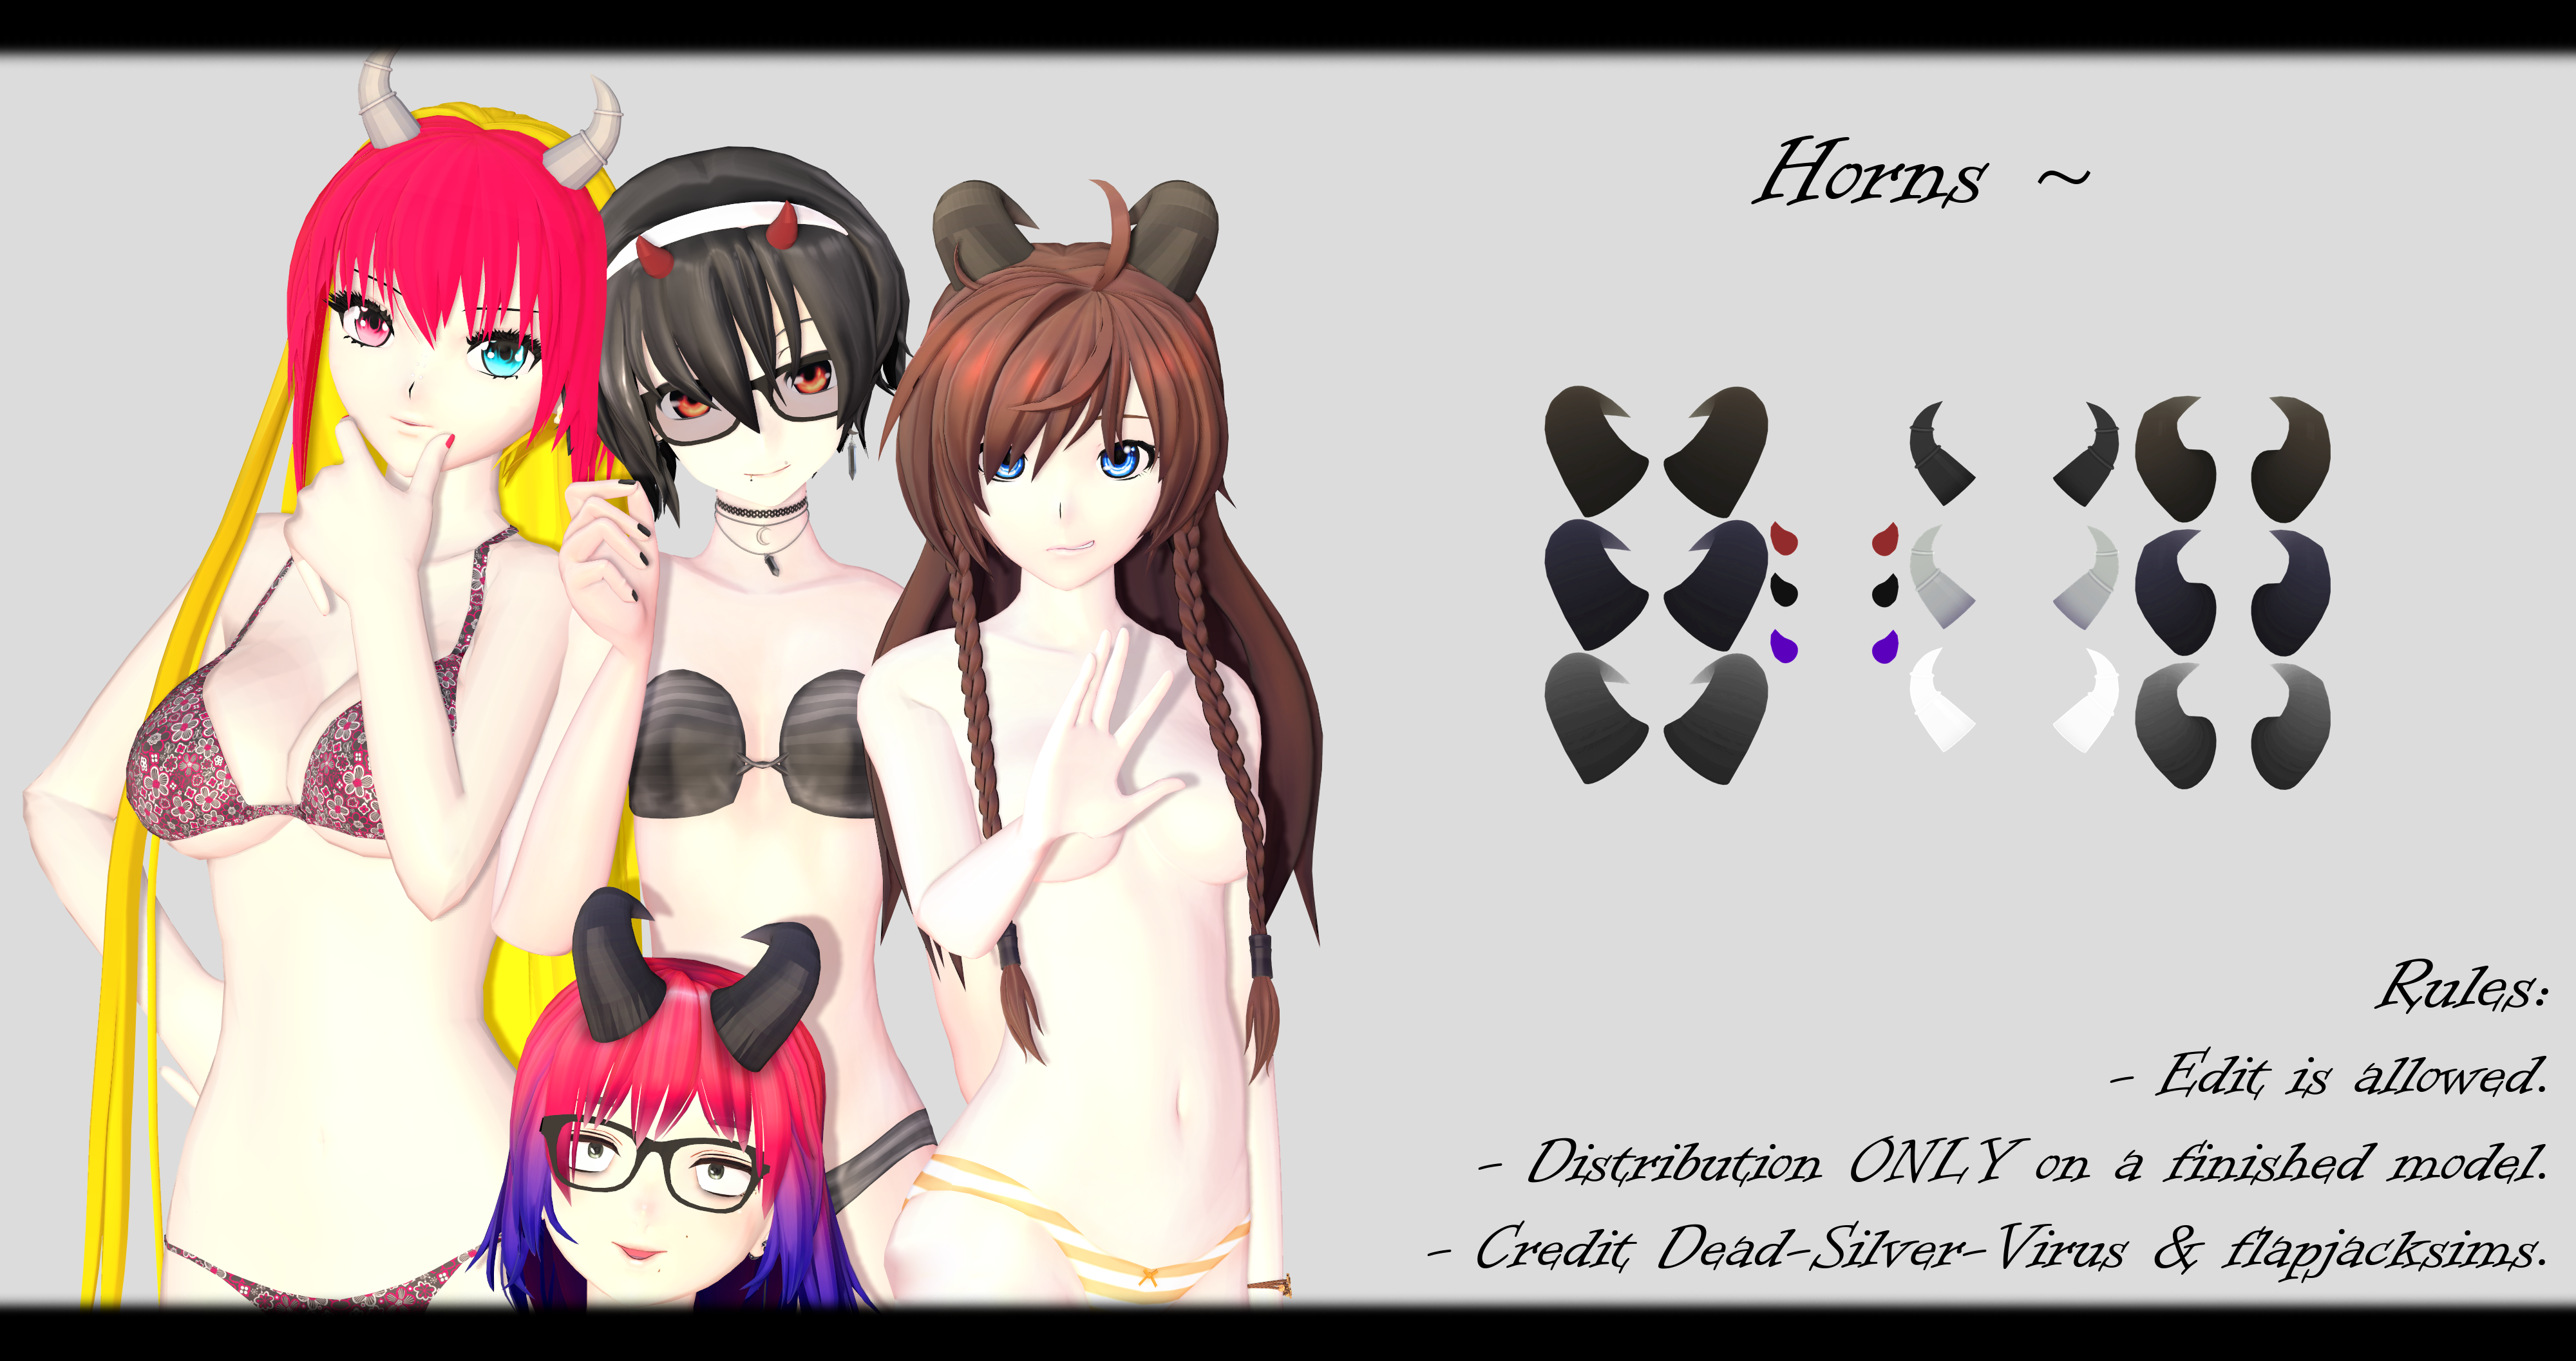 [MMD] Horns DL ~